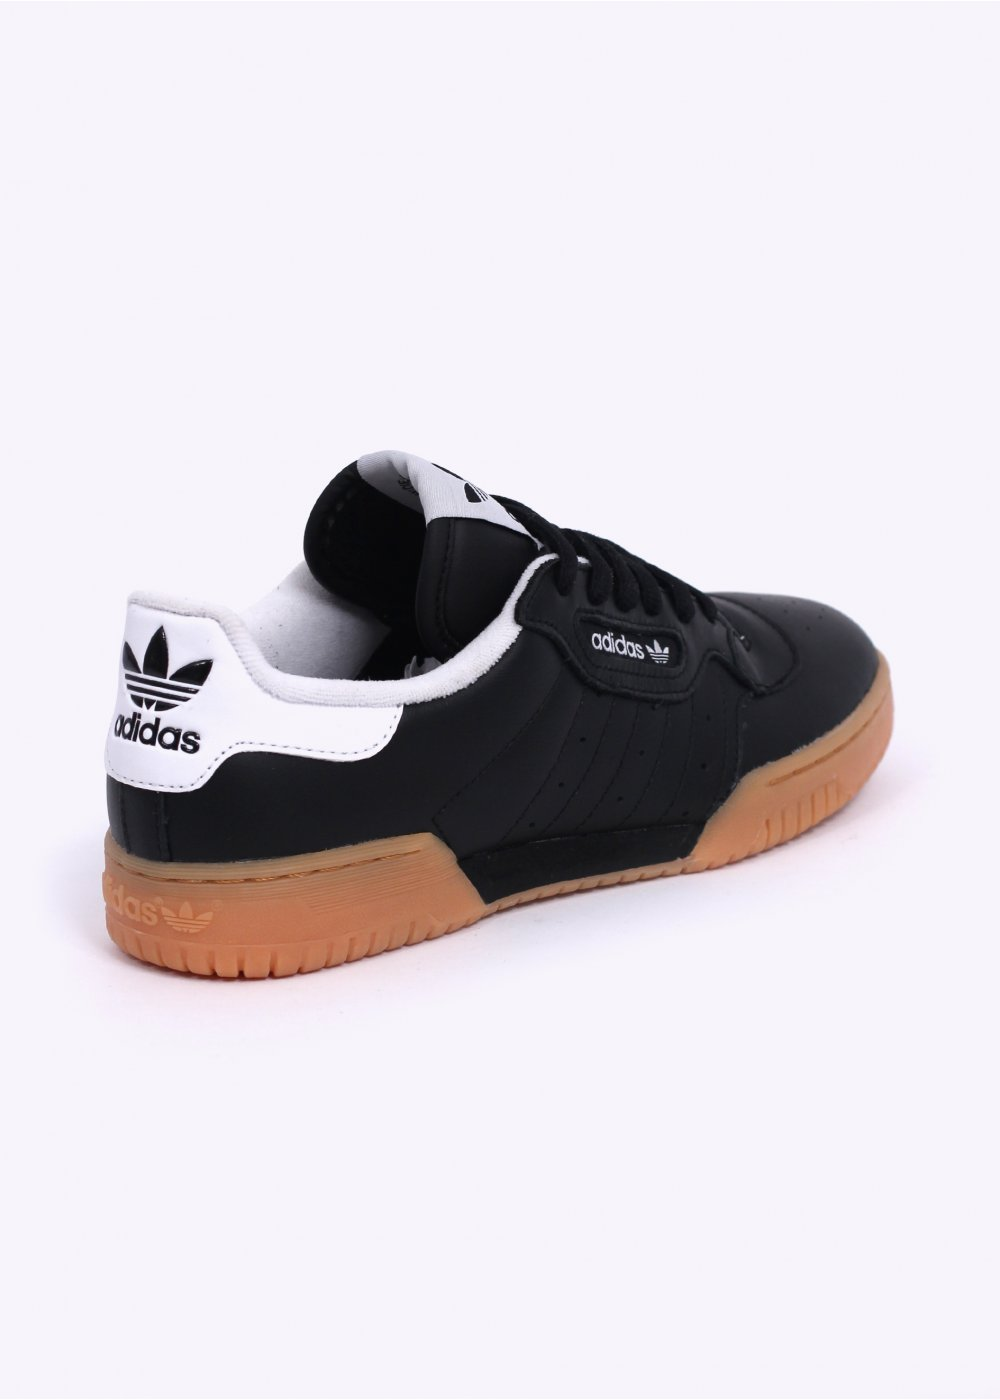 Adidas Originals Originals Top Ten Low Sneaker In Black: Adidas Originals Powerphase OG Trainers